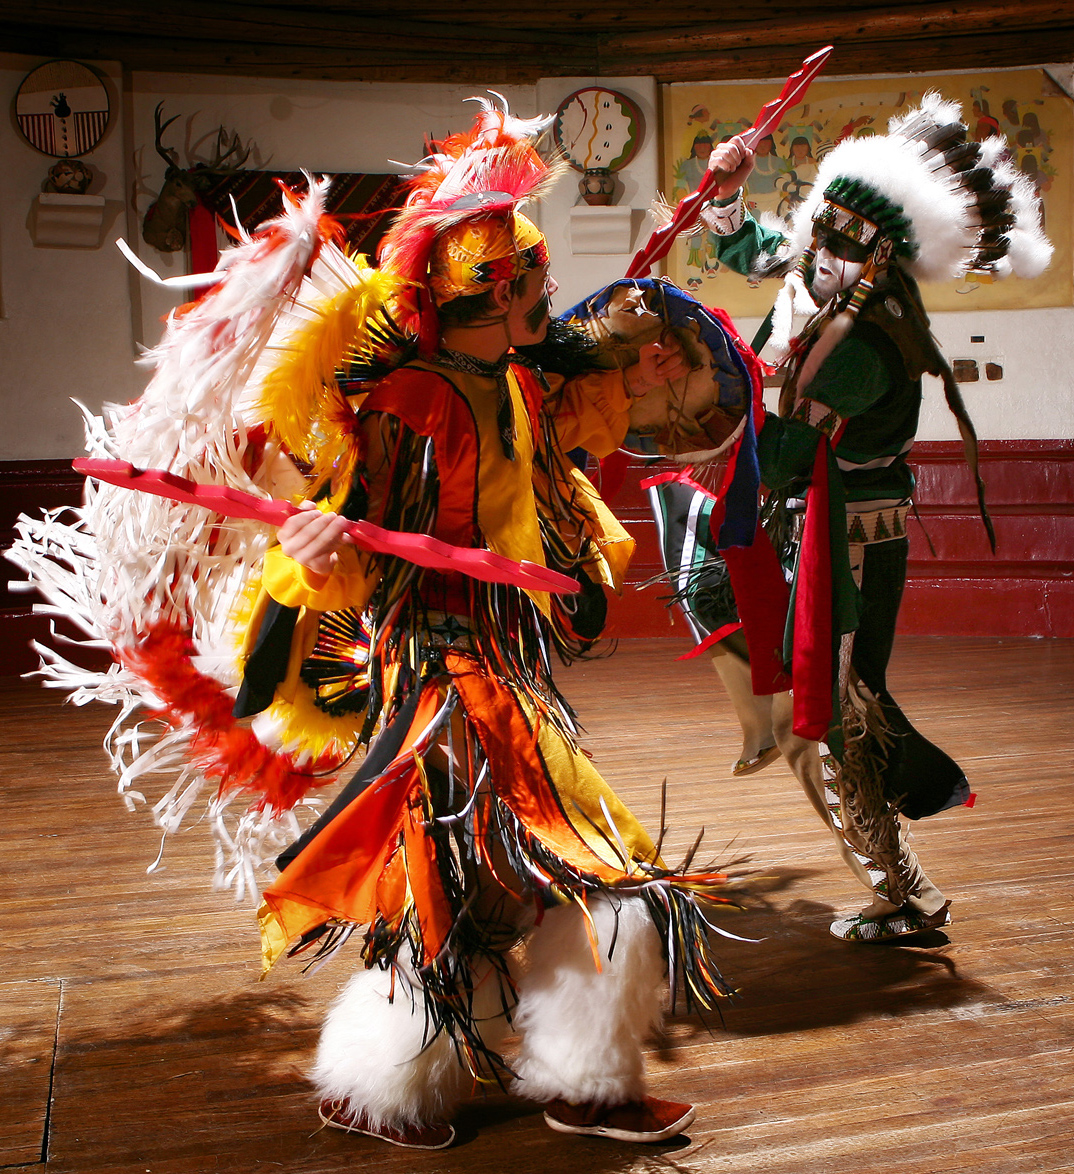 683109d6 ... including the Koshare Indian Museum and its world-famous Koshare Indian  Dancers, the Otero Museum, Fowler Historical Society and Museum, ...